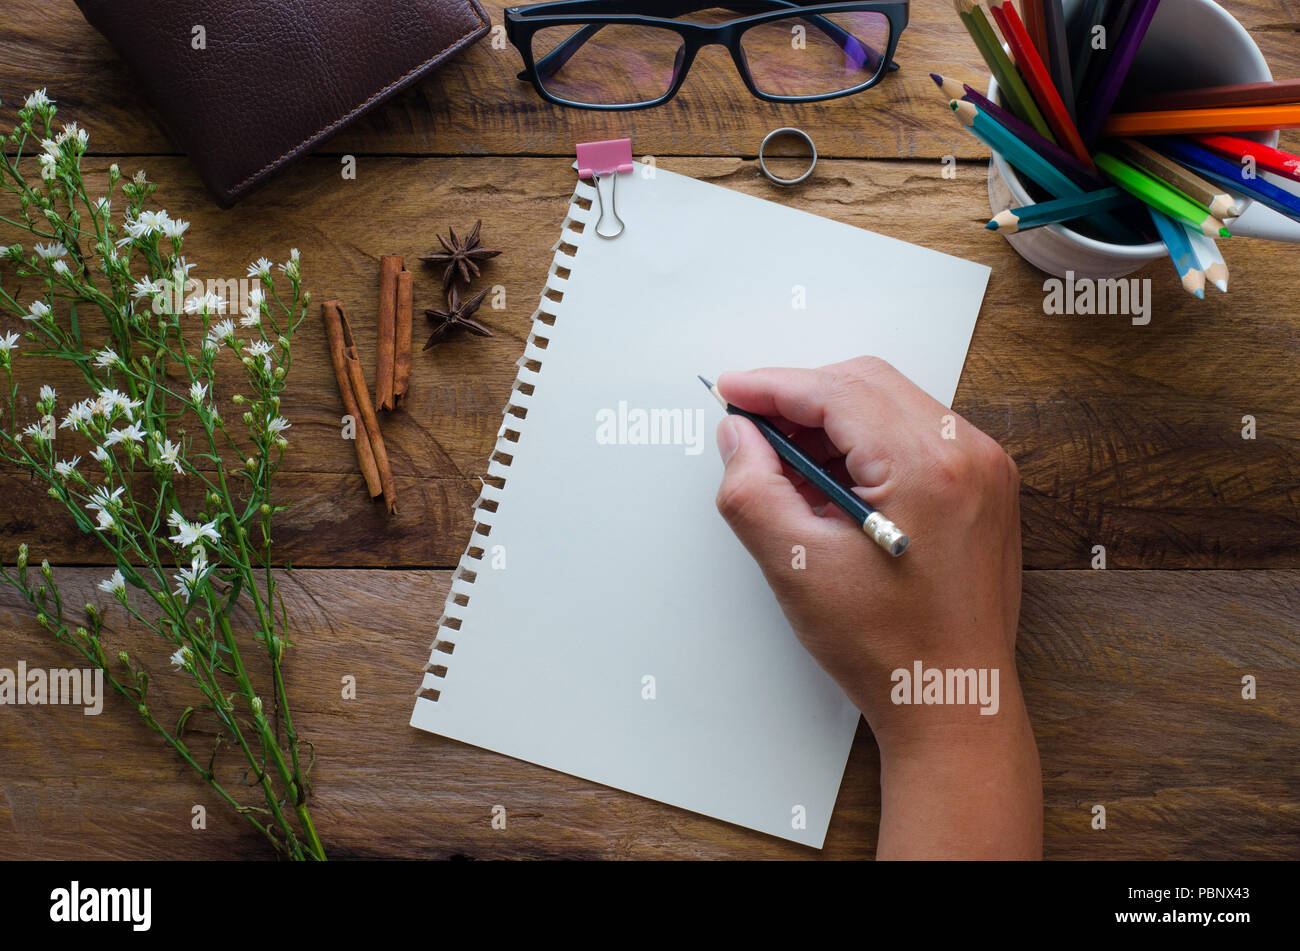 Hand-written note on a wooden table. - Stock Image